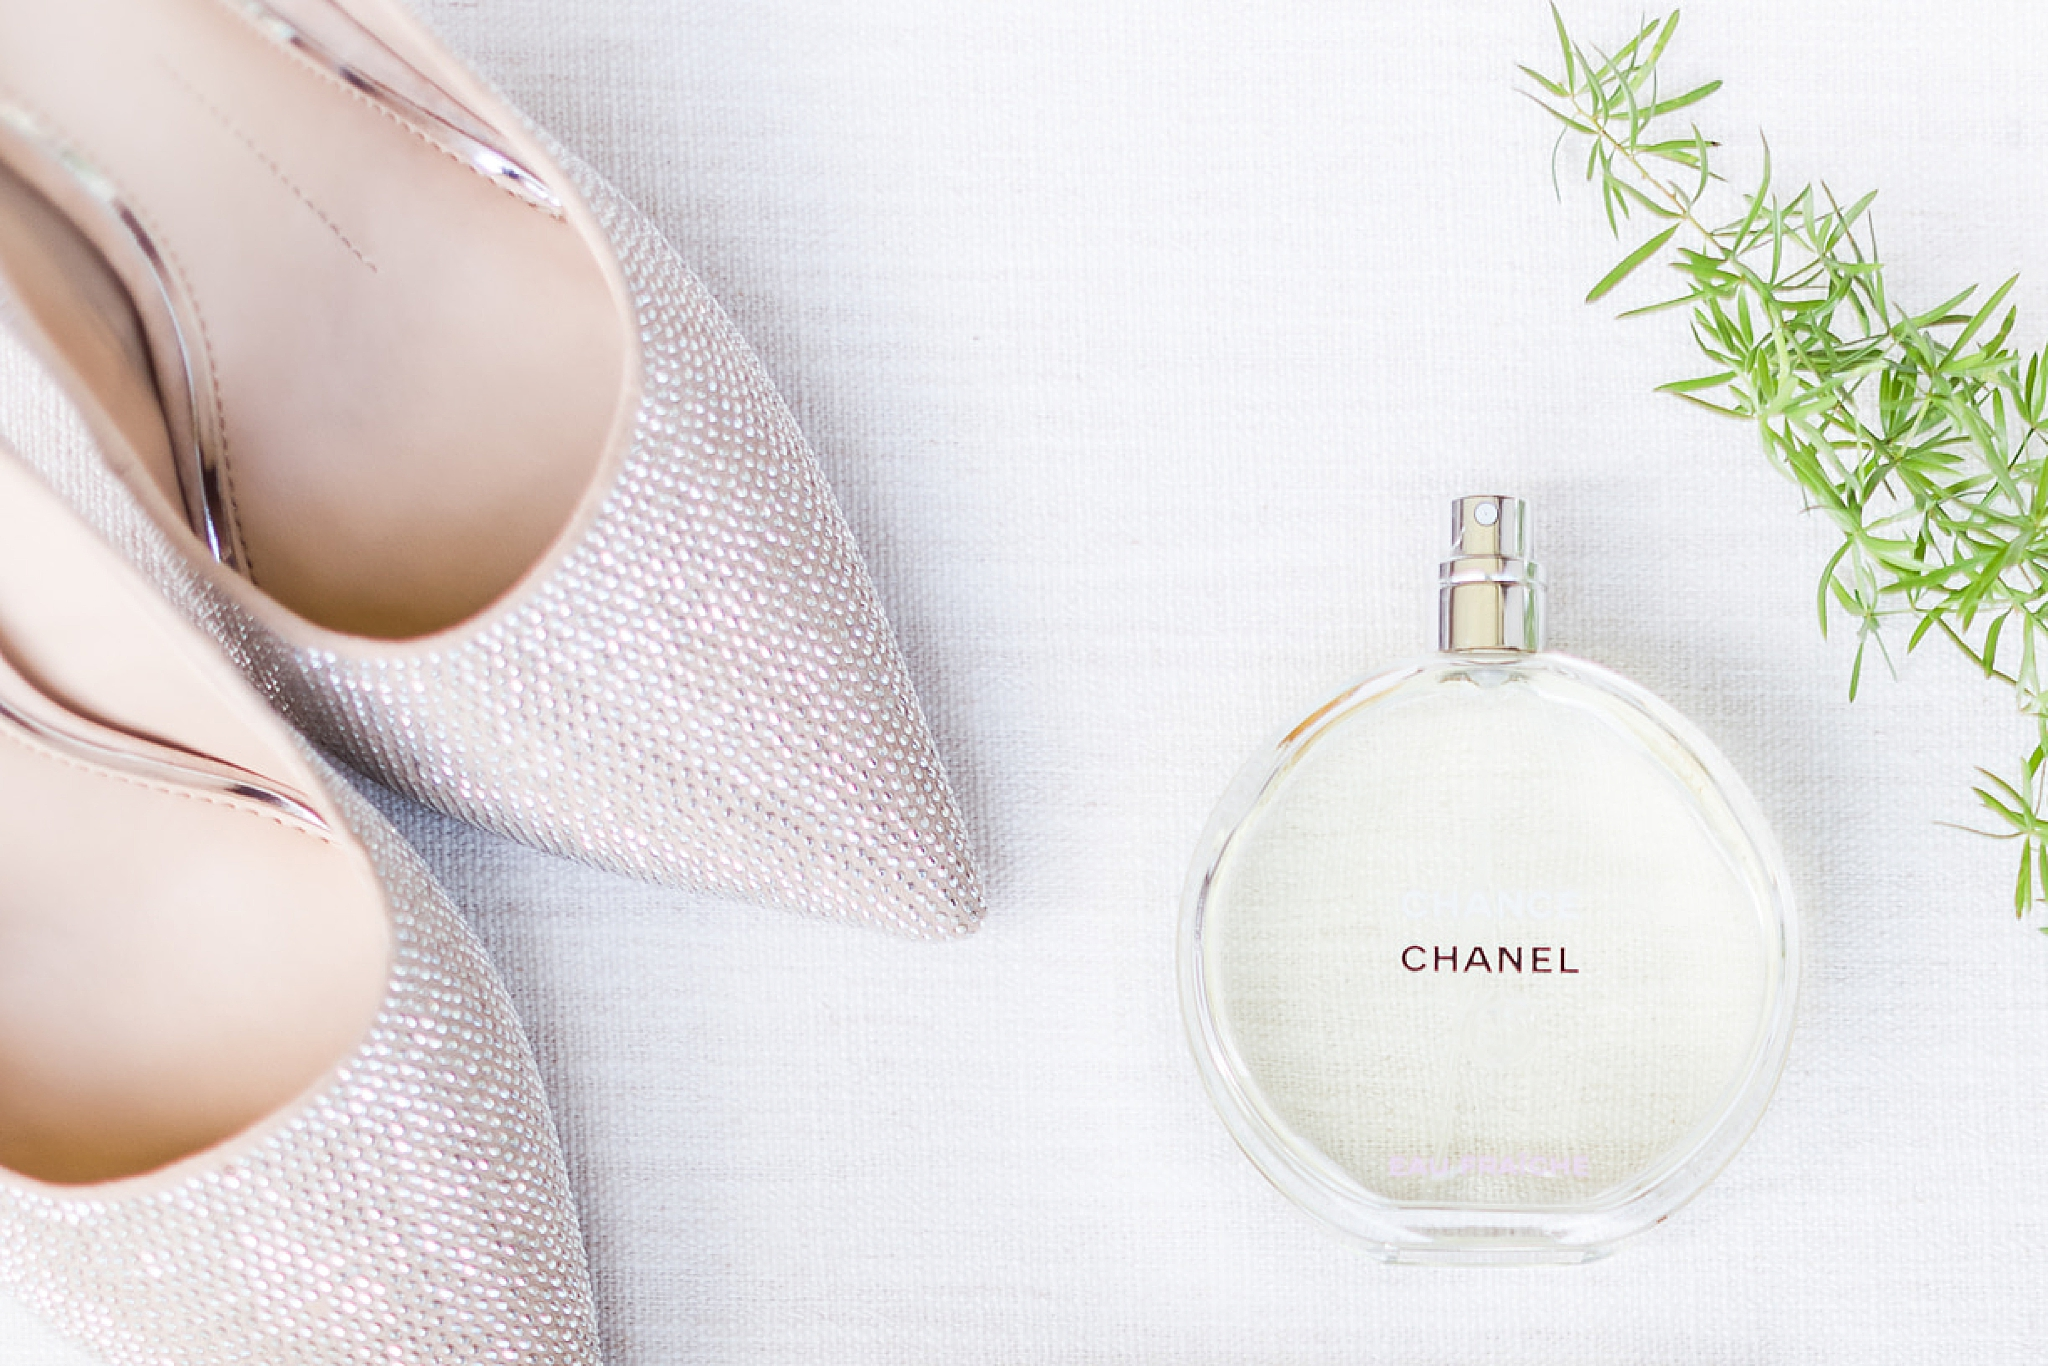 bride's shoes and Chanel perfume bottle